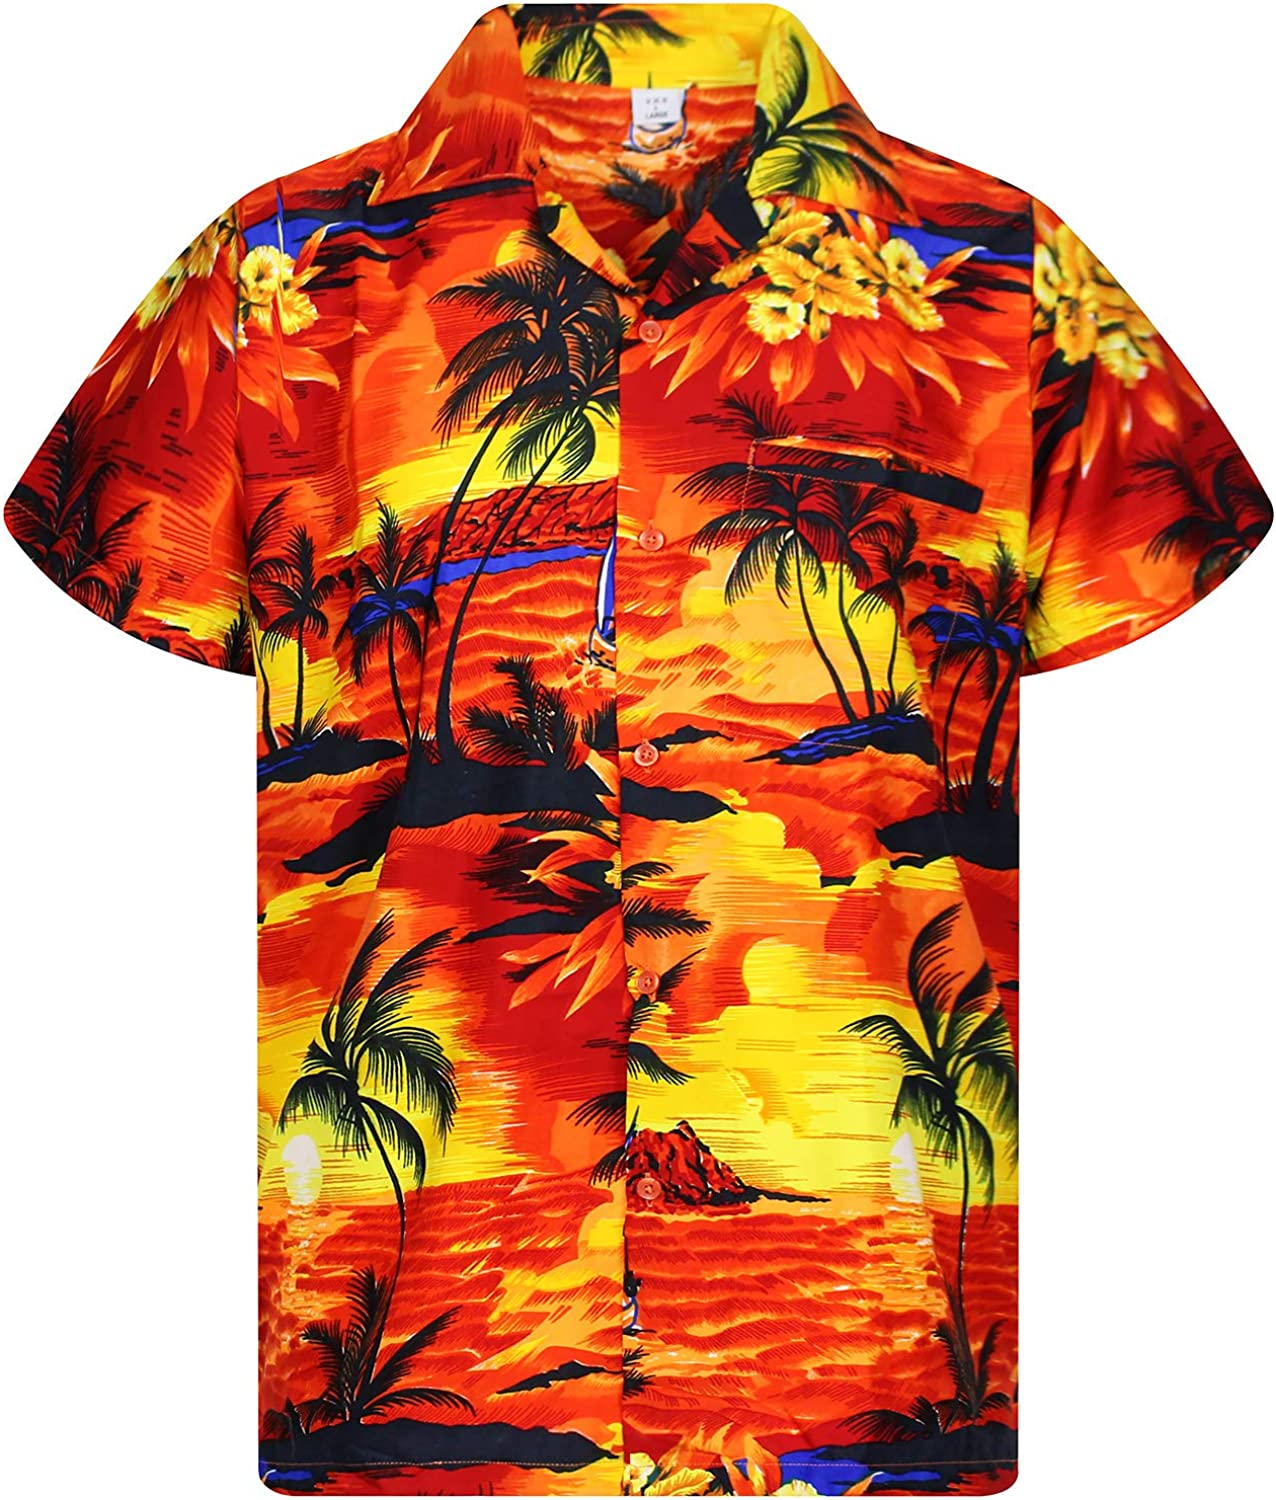 V.H.O. Funky Hawaiian Shirt Men Casual Front Pocket Button Down Very Loud Shortsleeve Unisex Surf